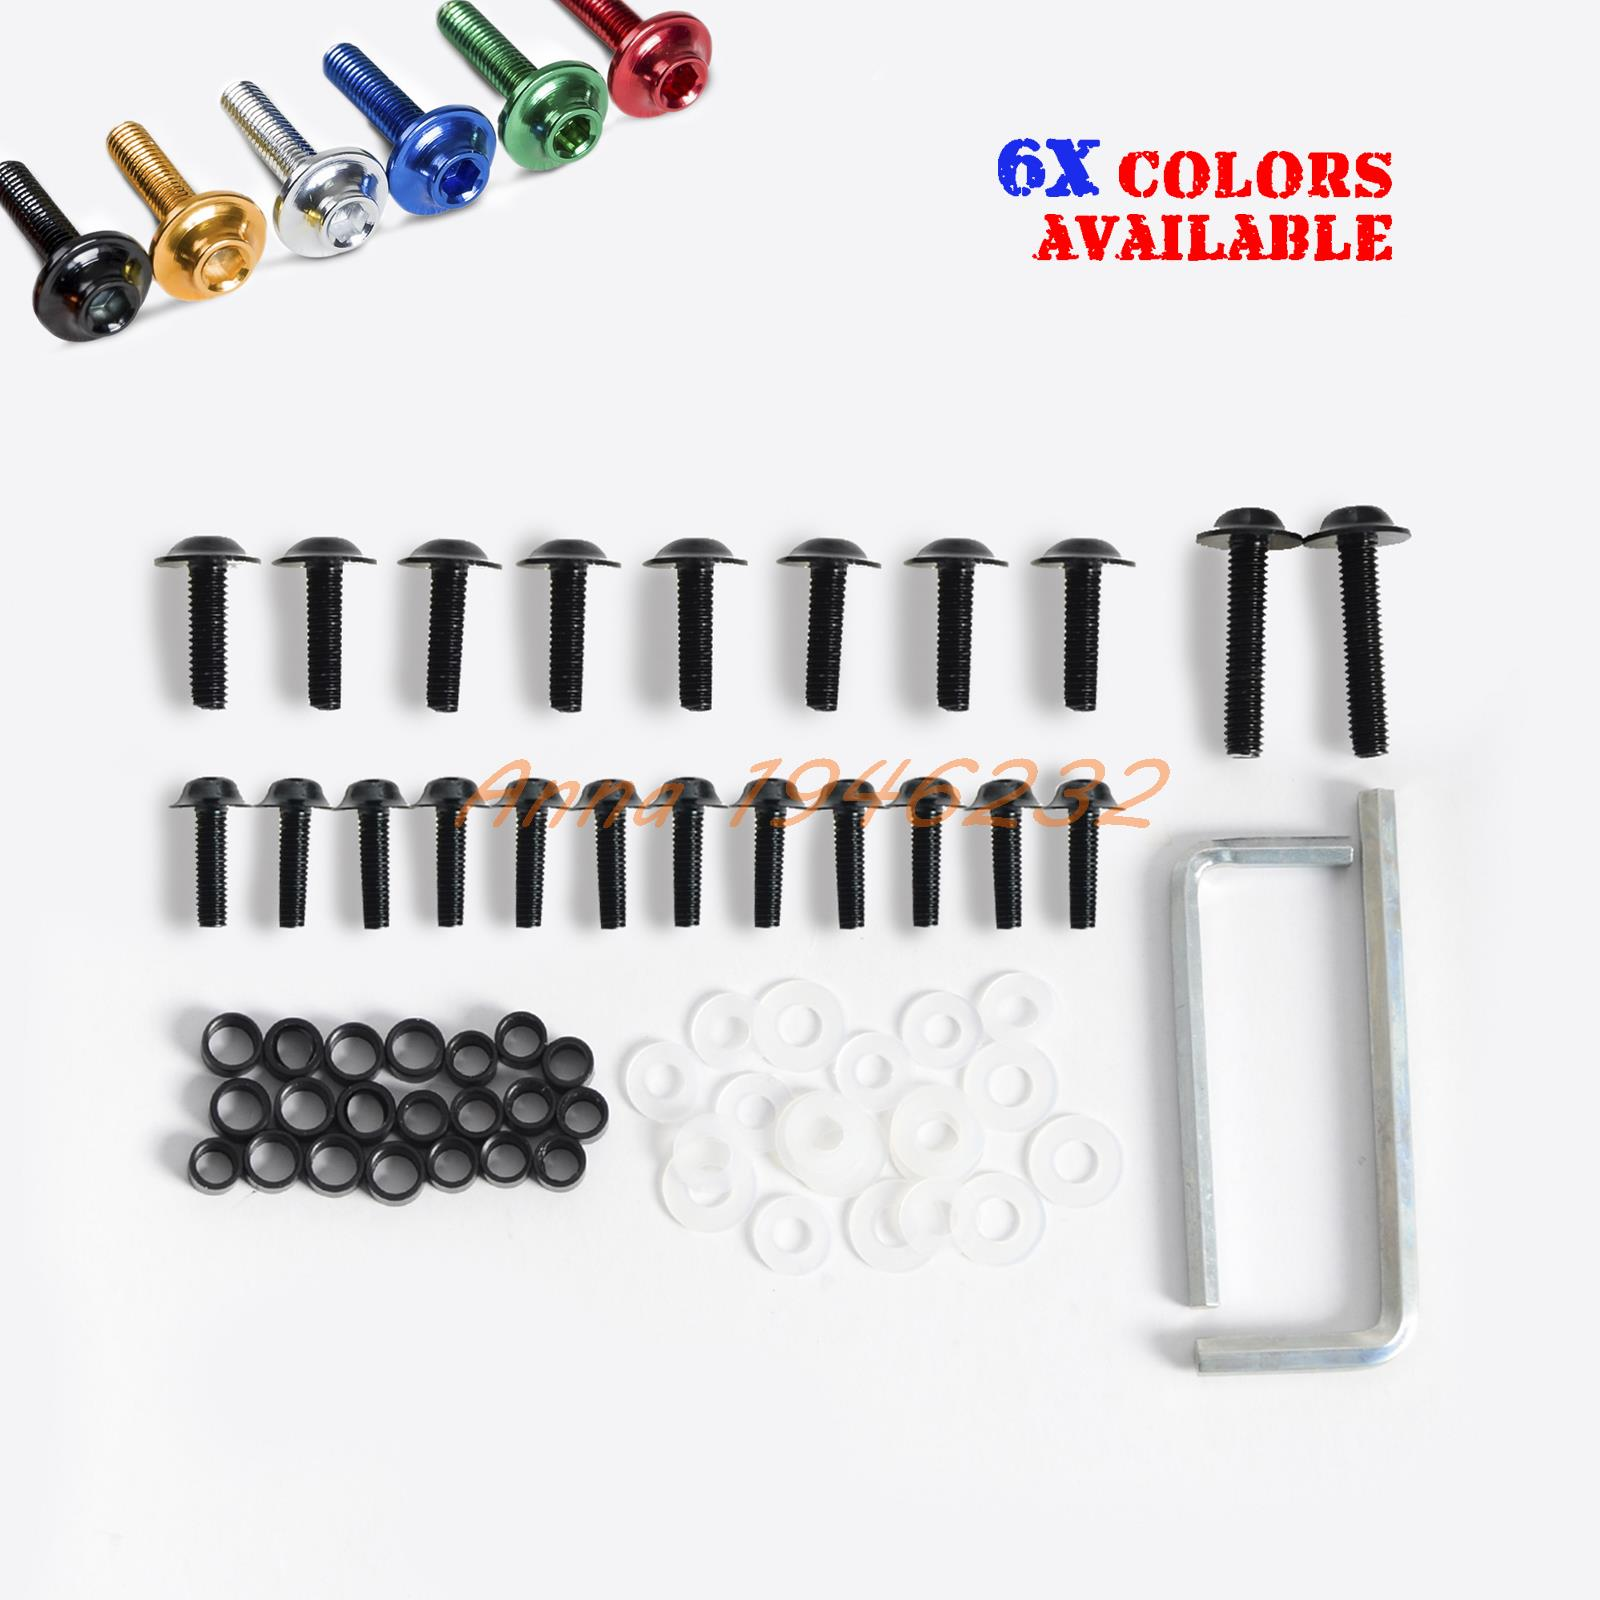 ヾ(^▽^)ノBlack Aluminum Fairing Bolts Kit For 2003-2006 Kawasaki ...